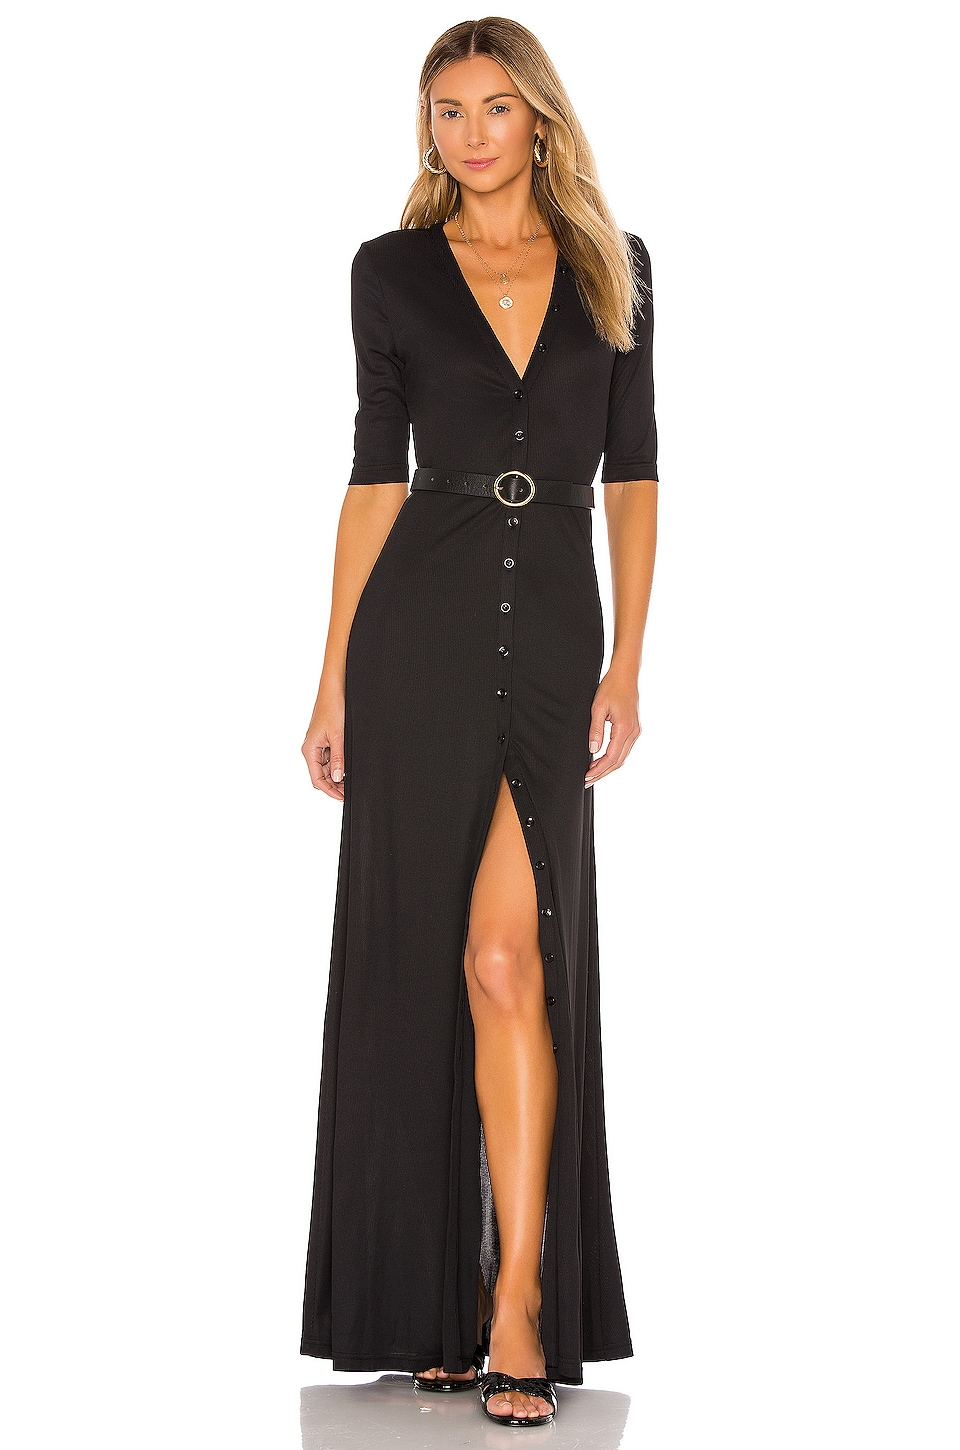 The Esperanza Maxi Dress             L'Academie                                                                                                       CA$ 226.98 6